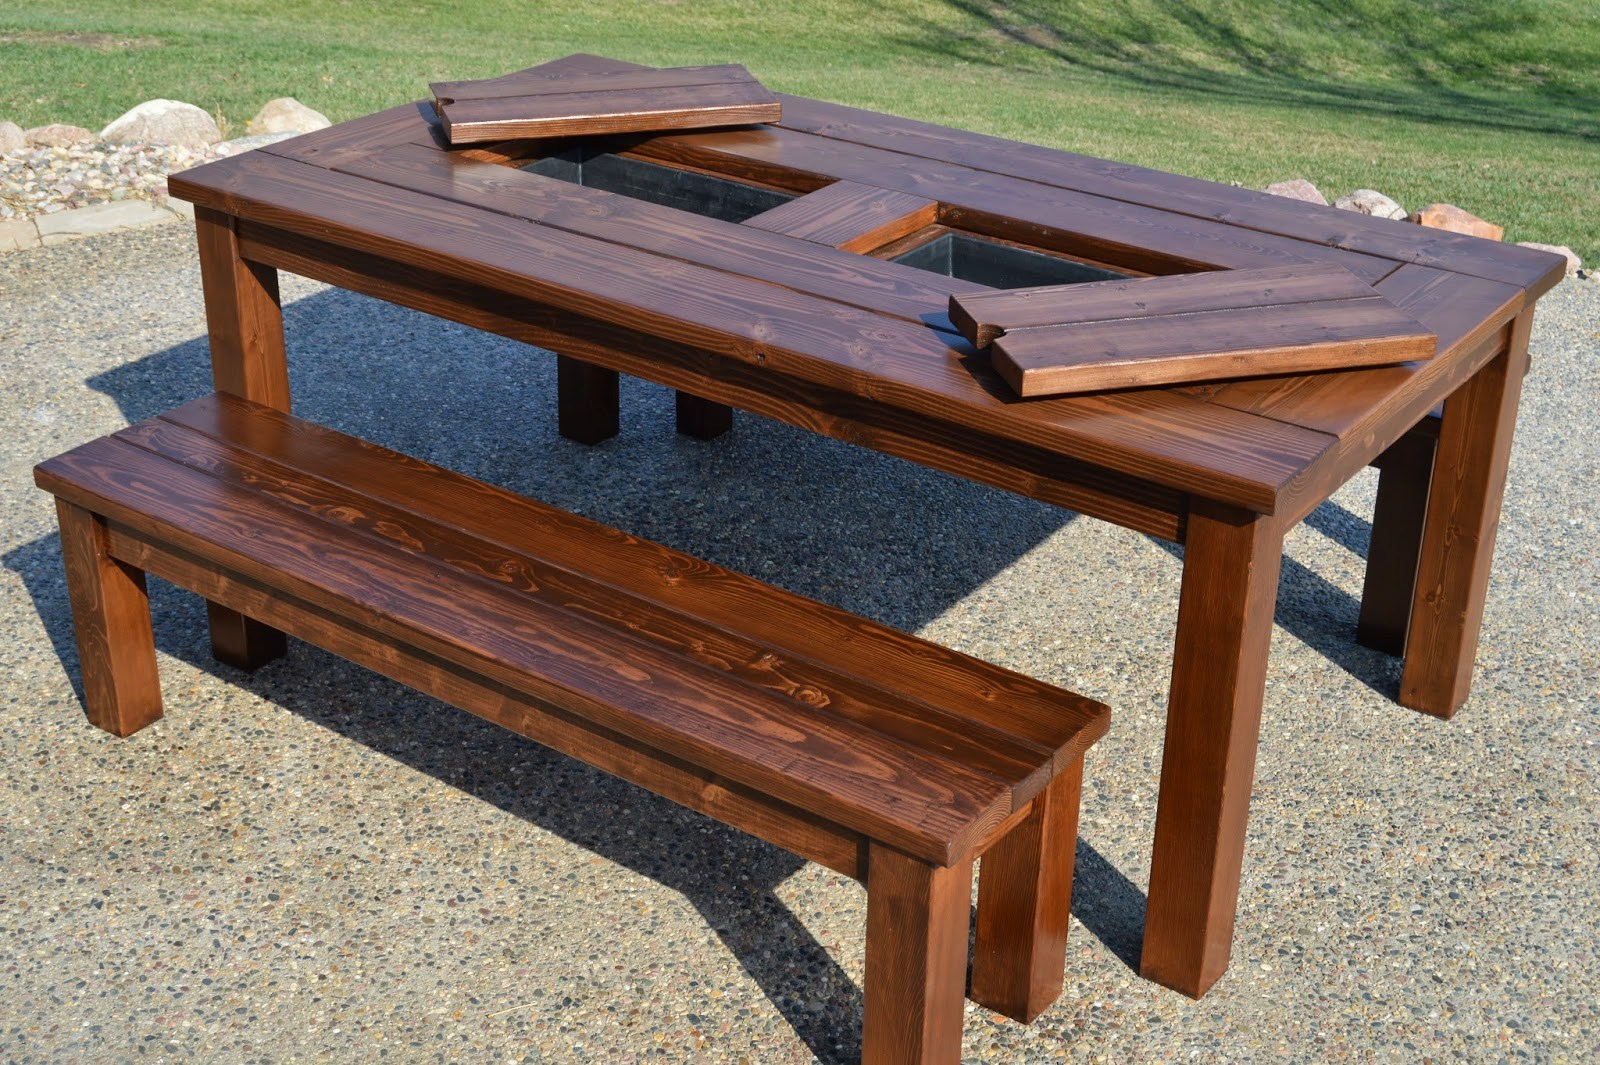 remodelaholic building plans patio table with built drink coolers witih kruses work outdoor side beverage cooler kruse accent chairs union jack furniture mid century modern